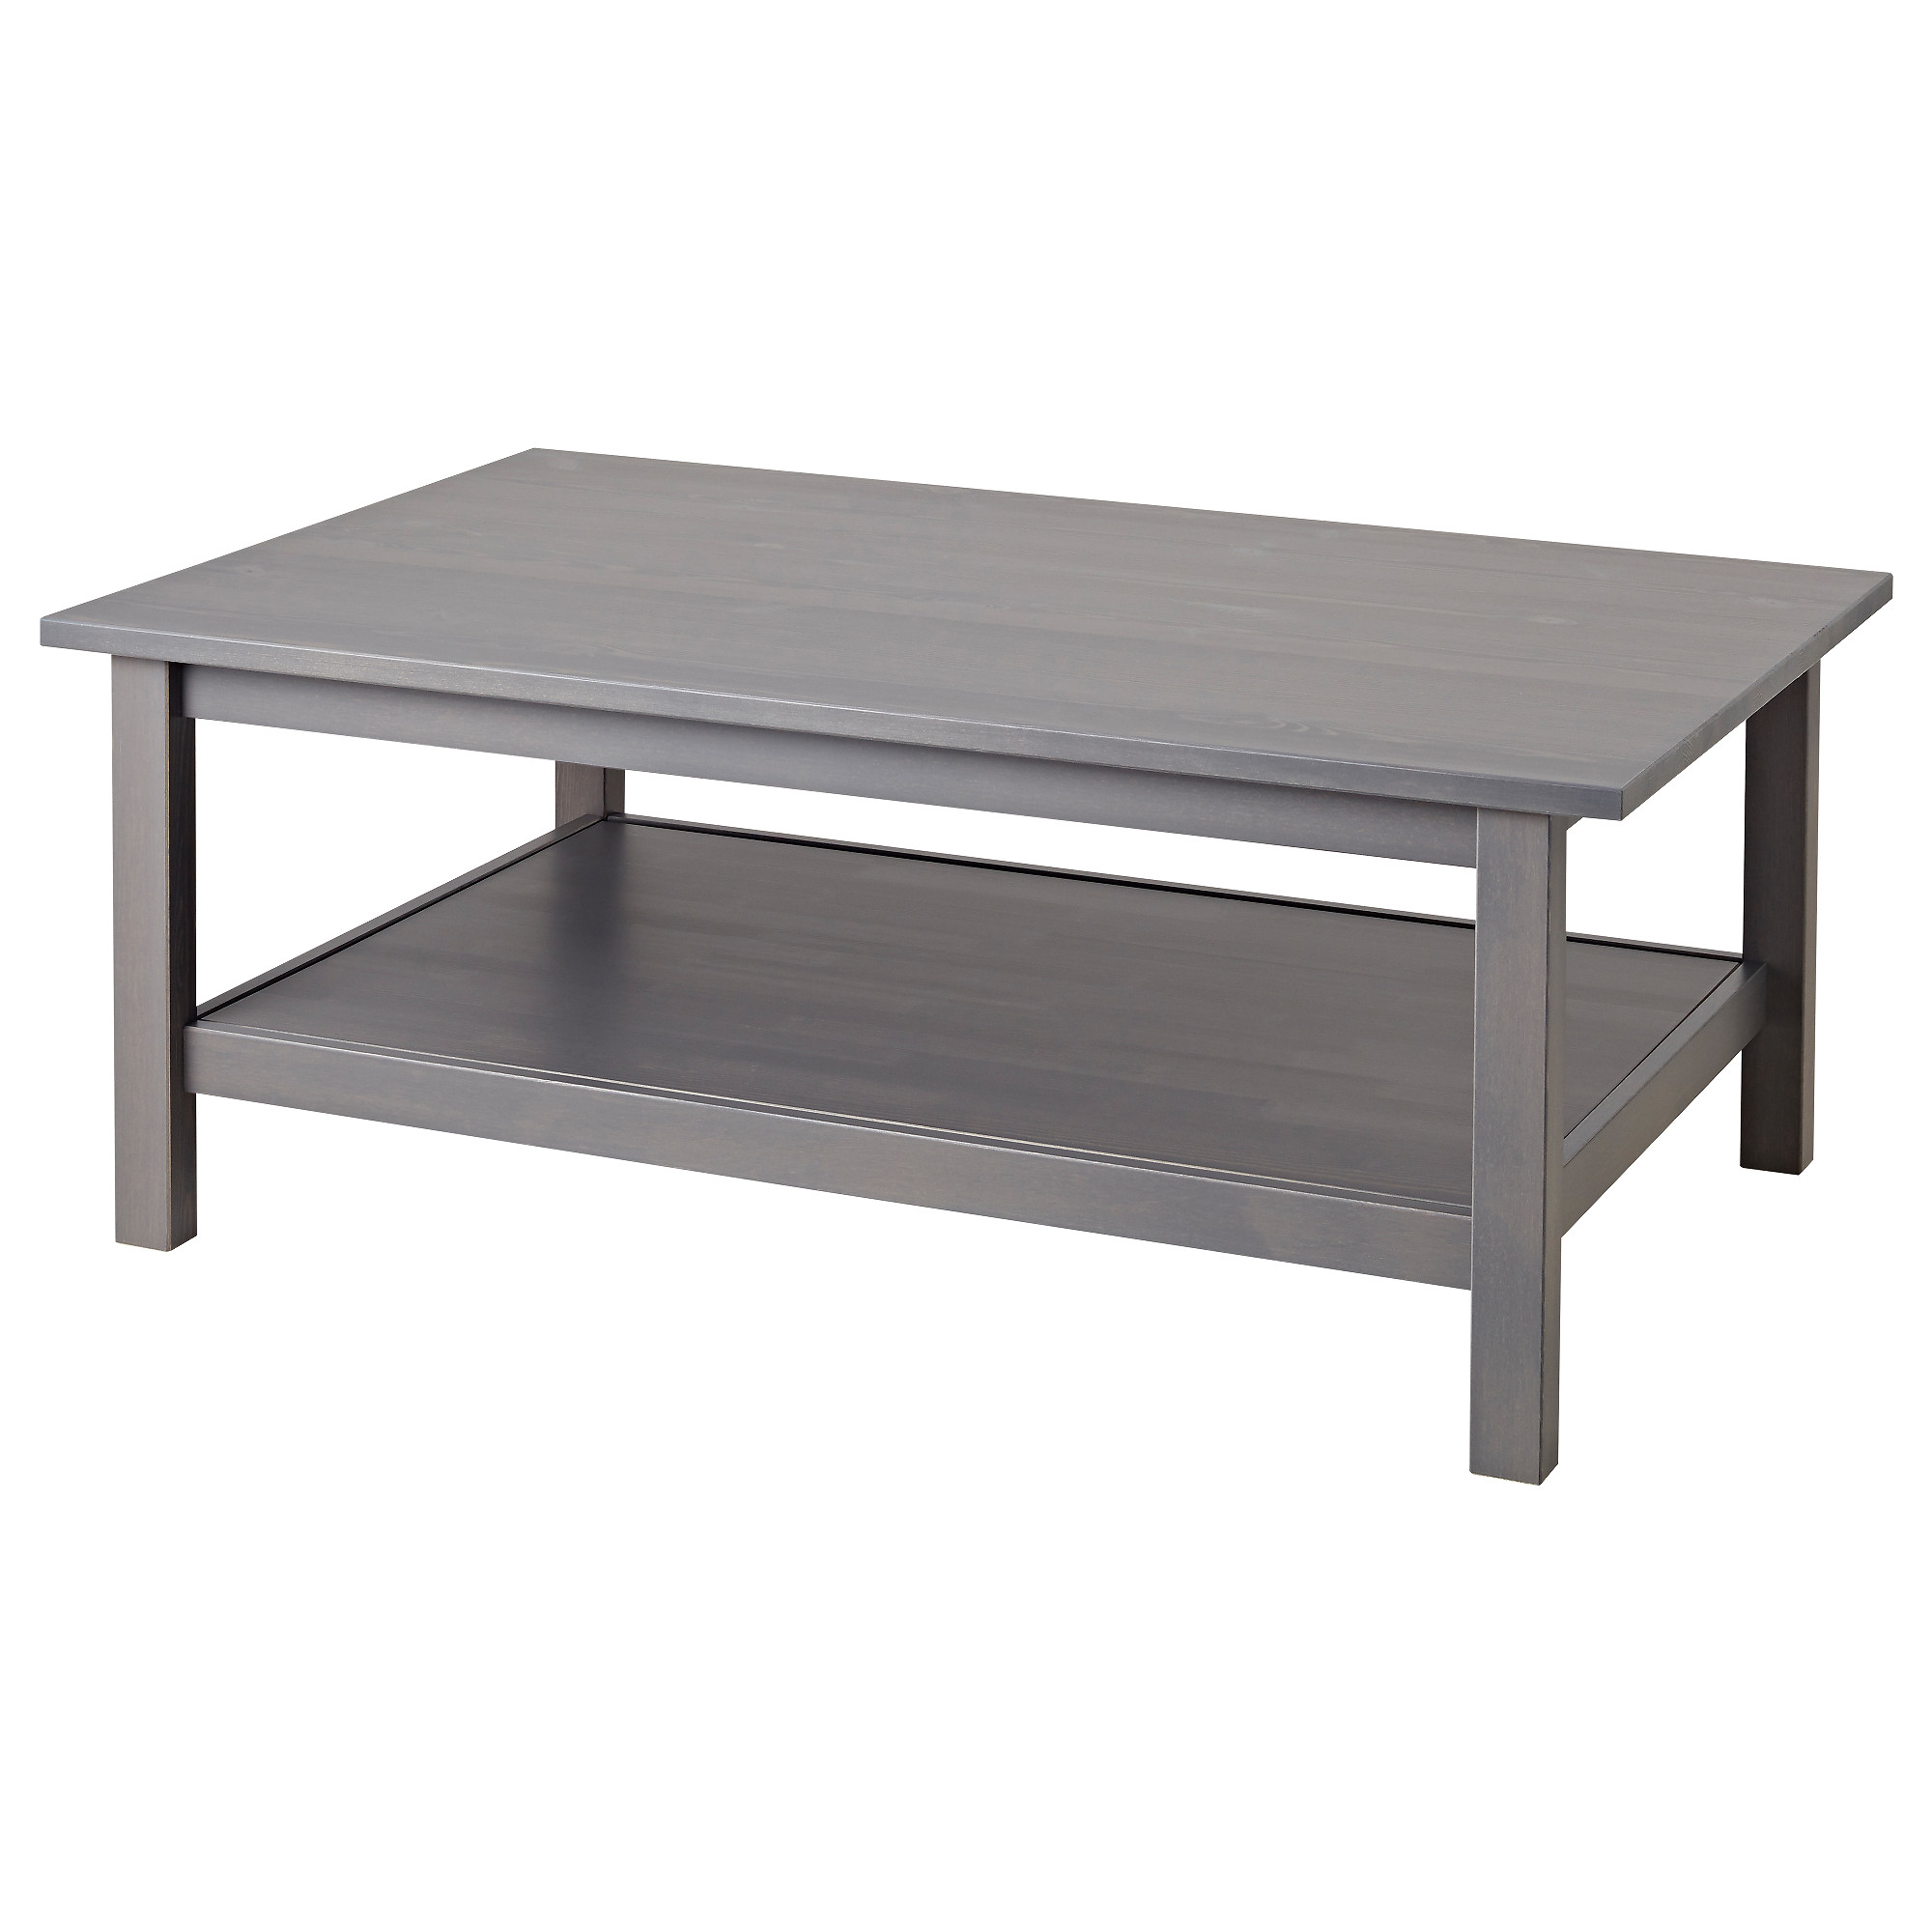 Coffee tables glass wooden coffee tables ikea hemnes coffee table dark gray gray stained length 46 12 width geotapseo Gallery